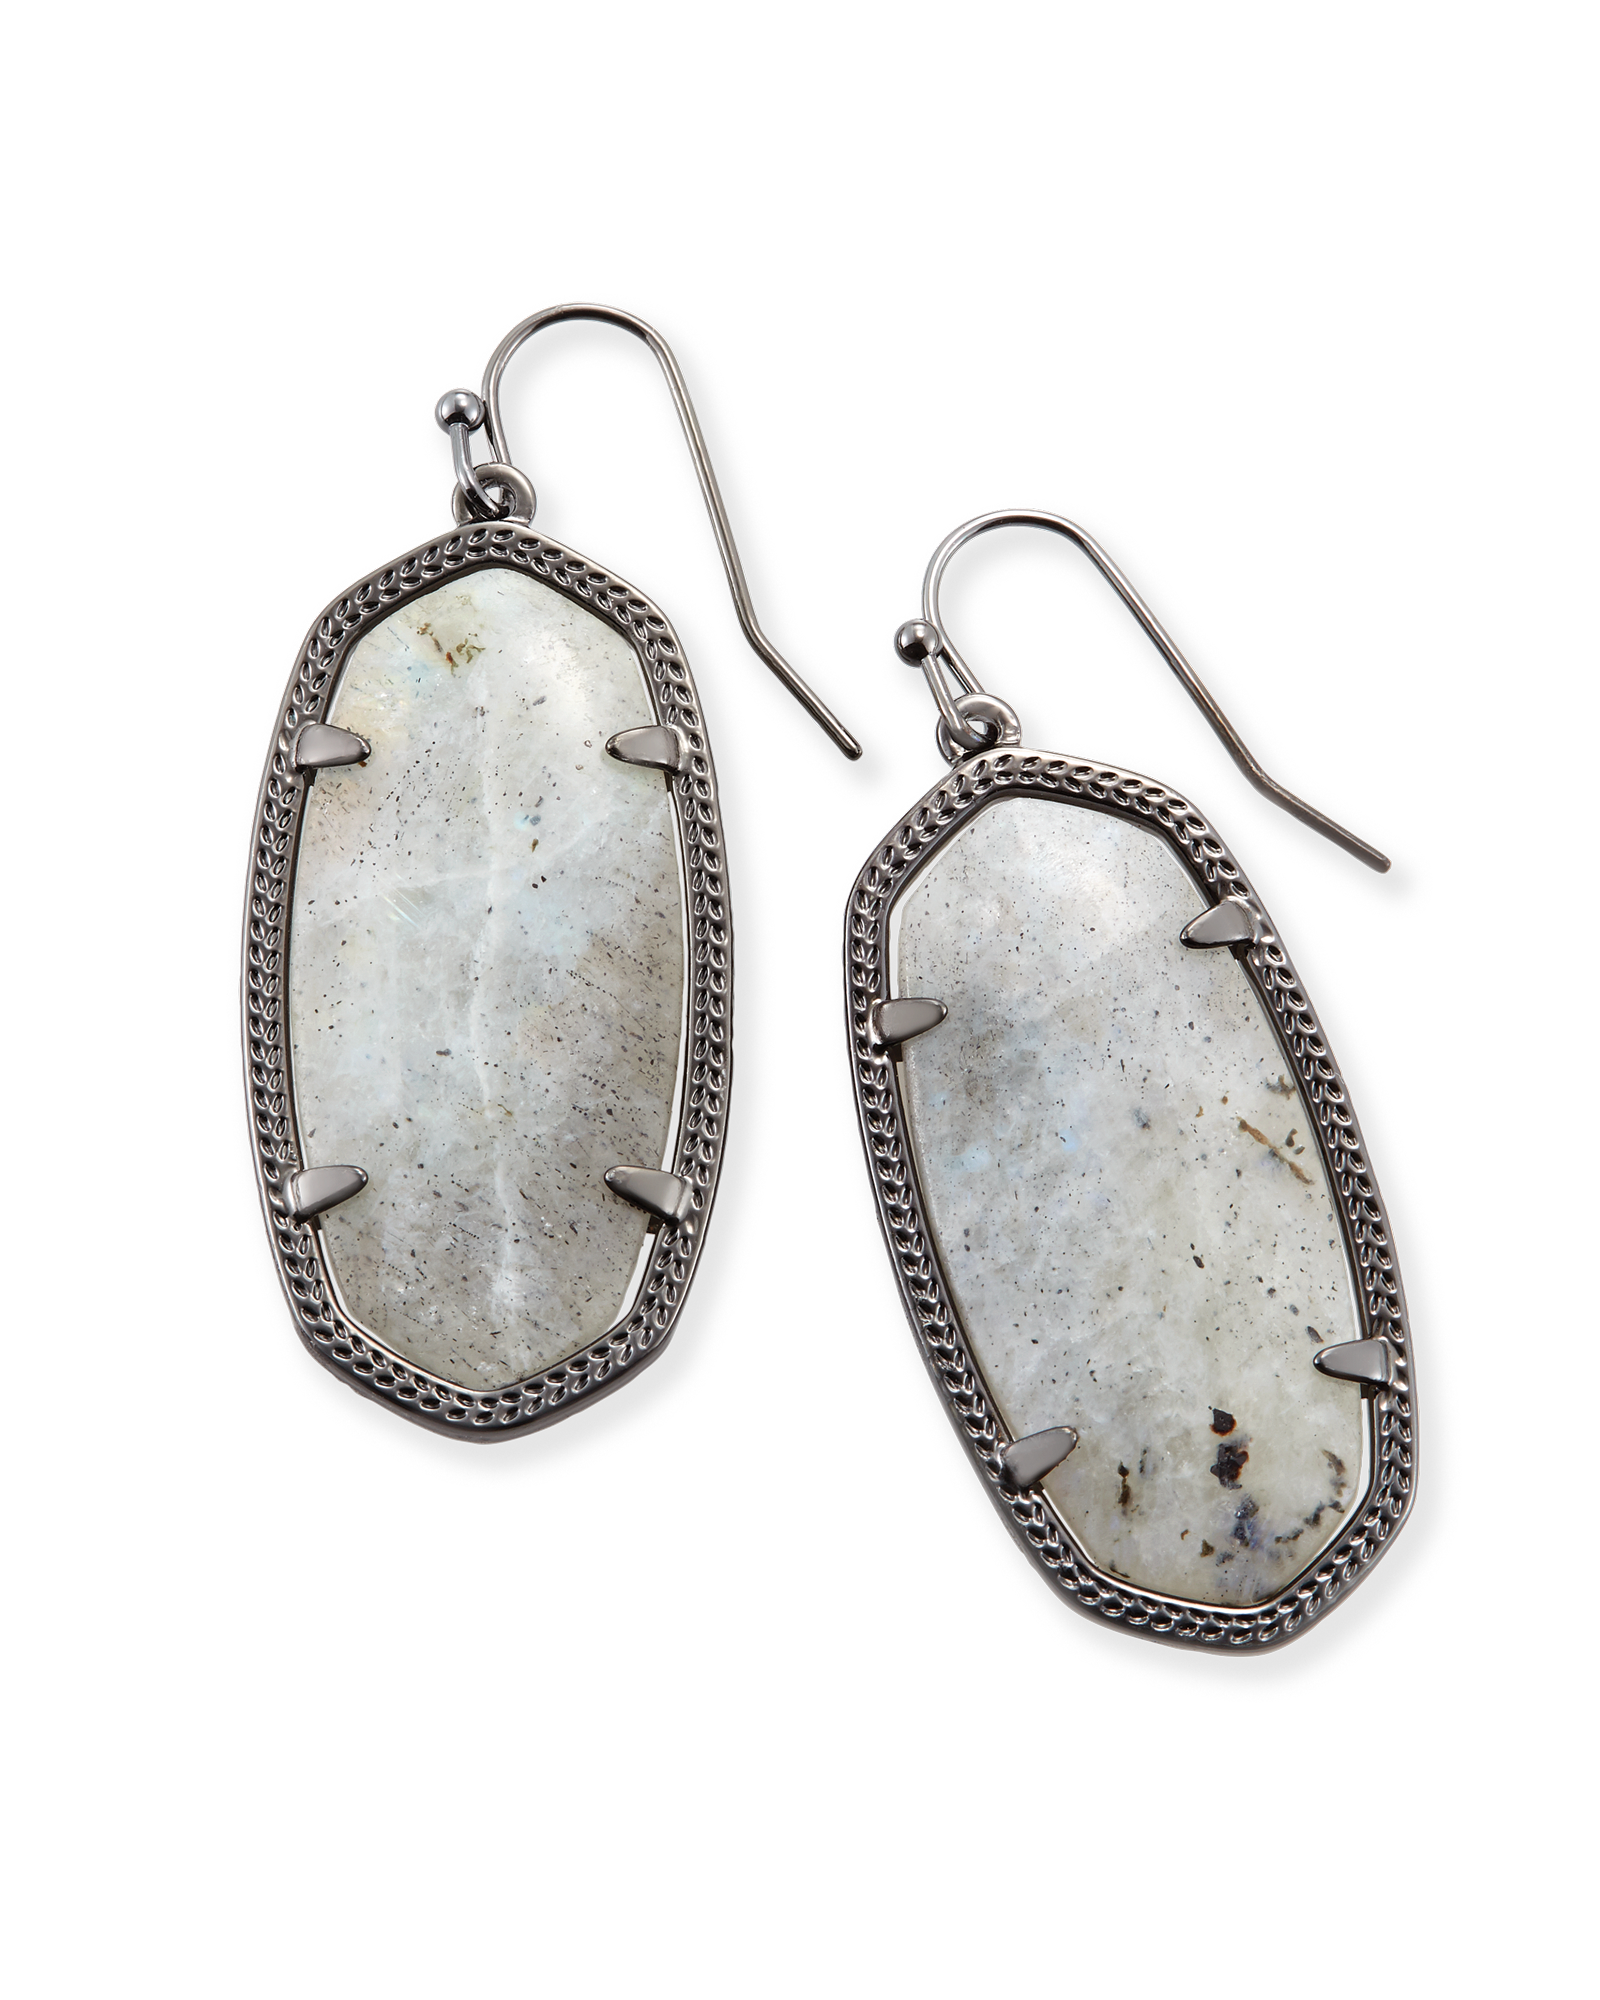 Shop gunmetal drop earrings in unique labradorite stones classic shop gunmetal drop earrings in unique labradorite stones classic kendra scott styles inspired by our arubaitofo Images